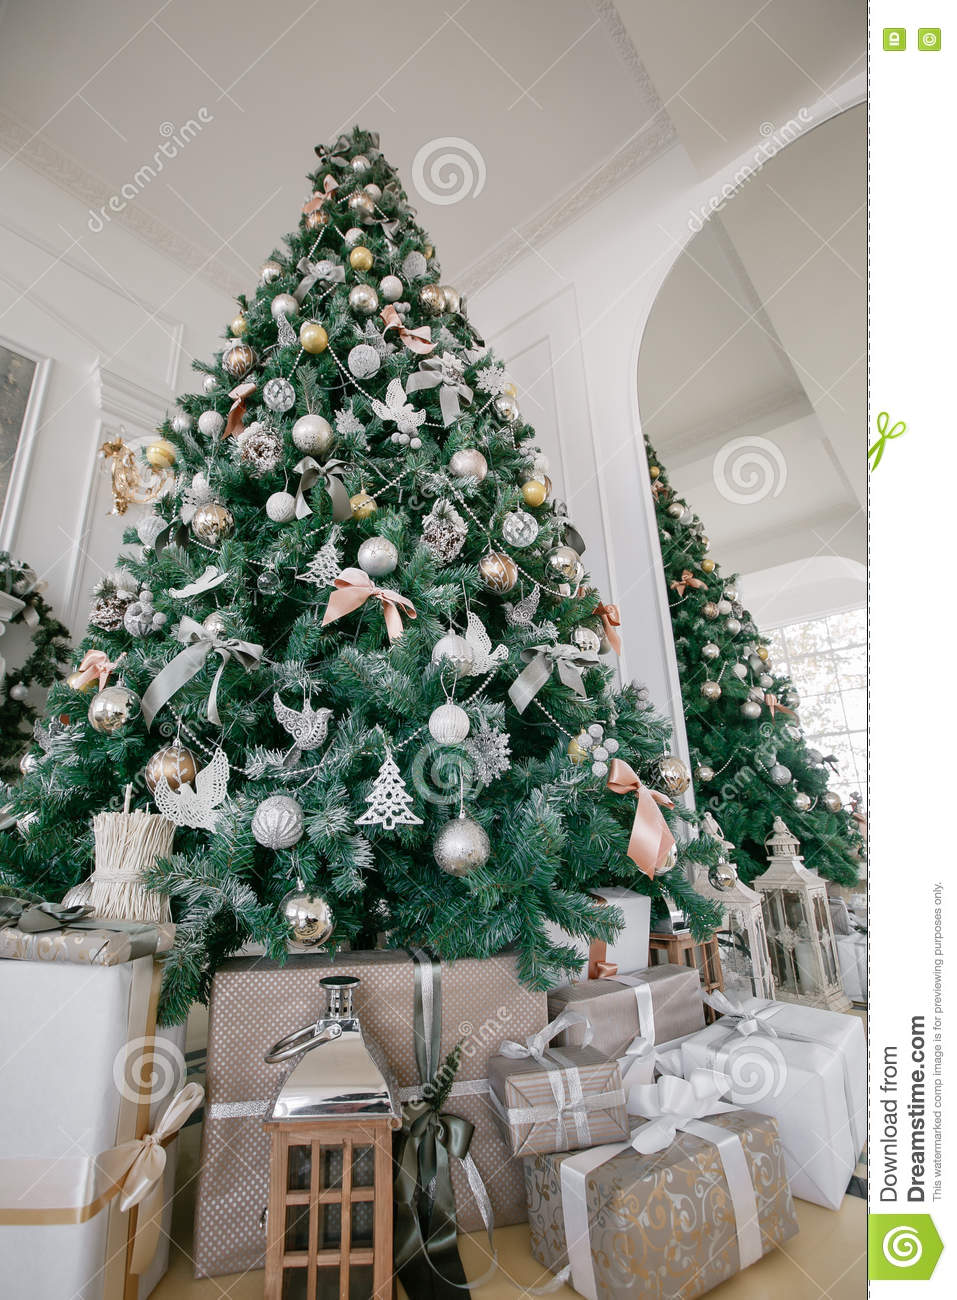 Luxury Christmas Home Decor: Christmas Morning. Classic Luxury Apartments With A White